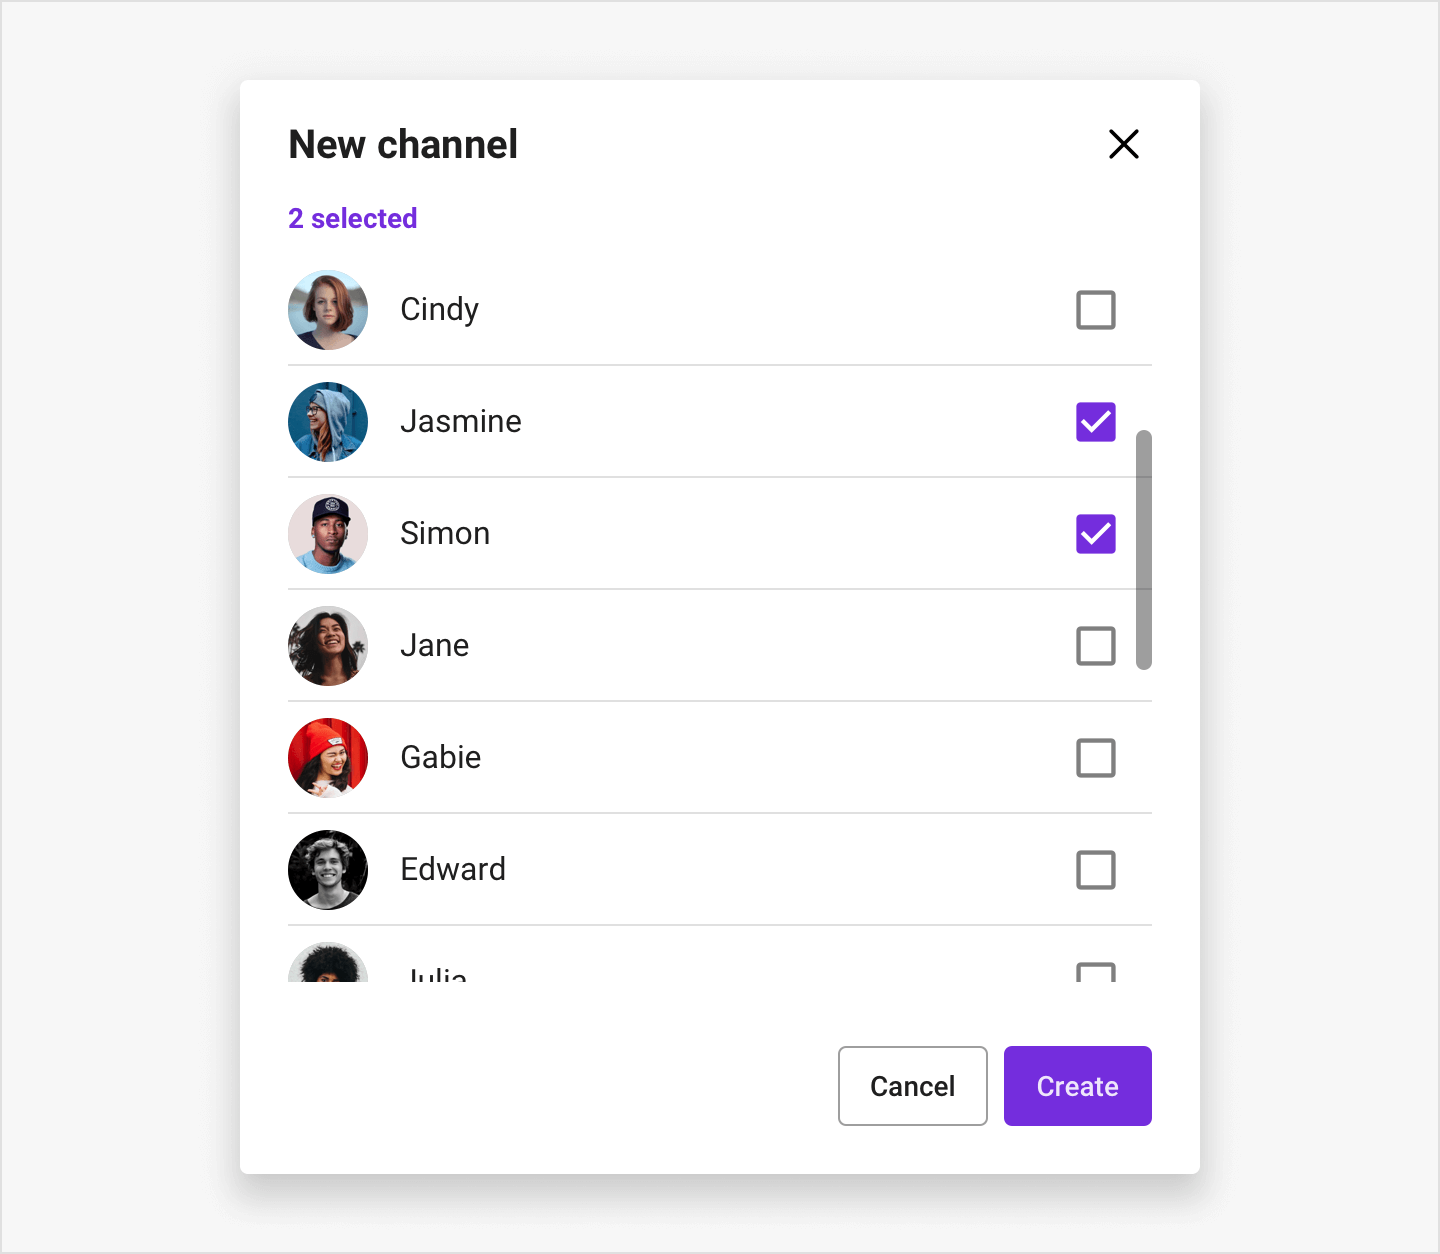 Image|Select users view showing a list of users to invite to a group channel.